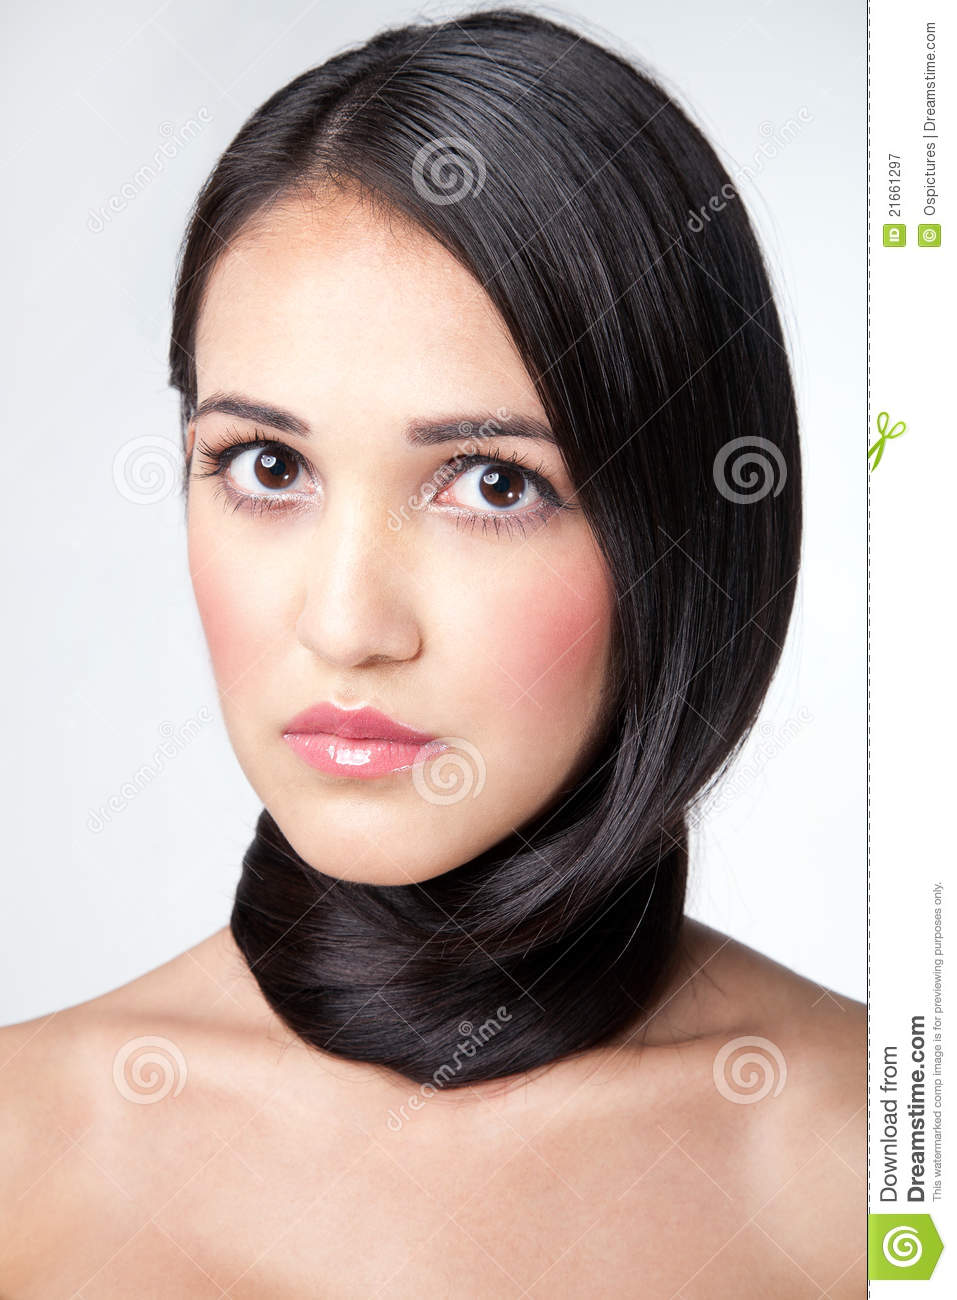 Wrapped Around A Neck Hair Stock Image Image Of Lady 21661297